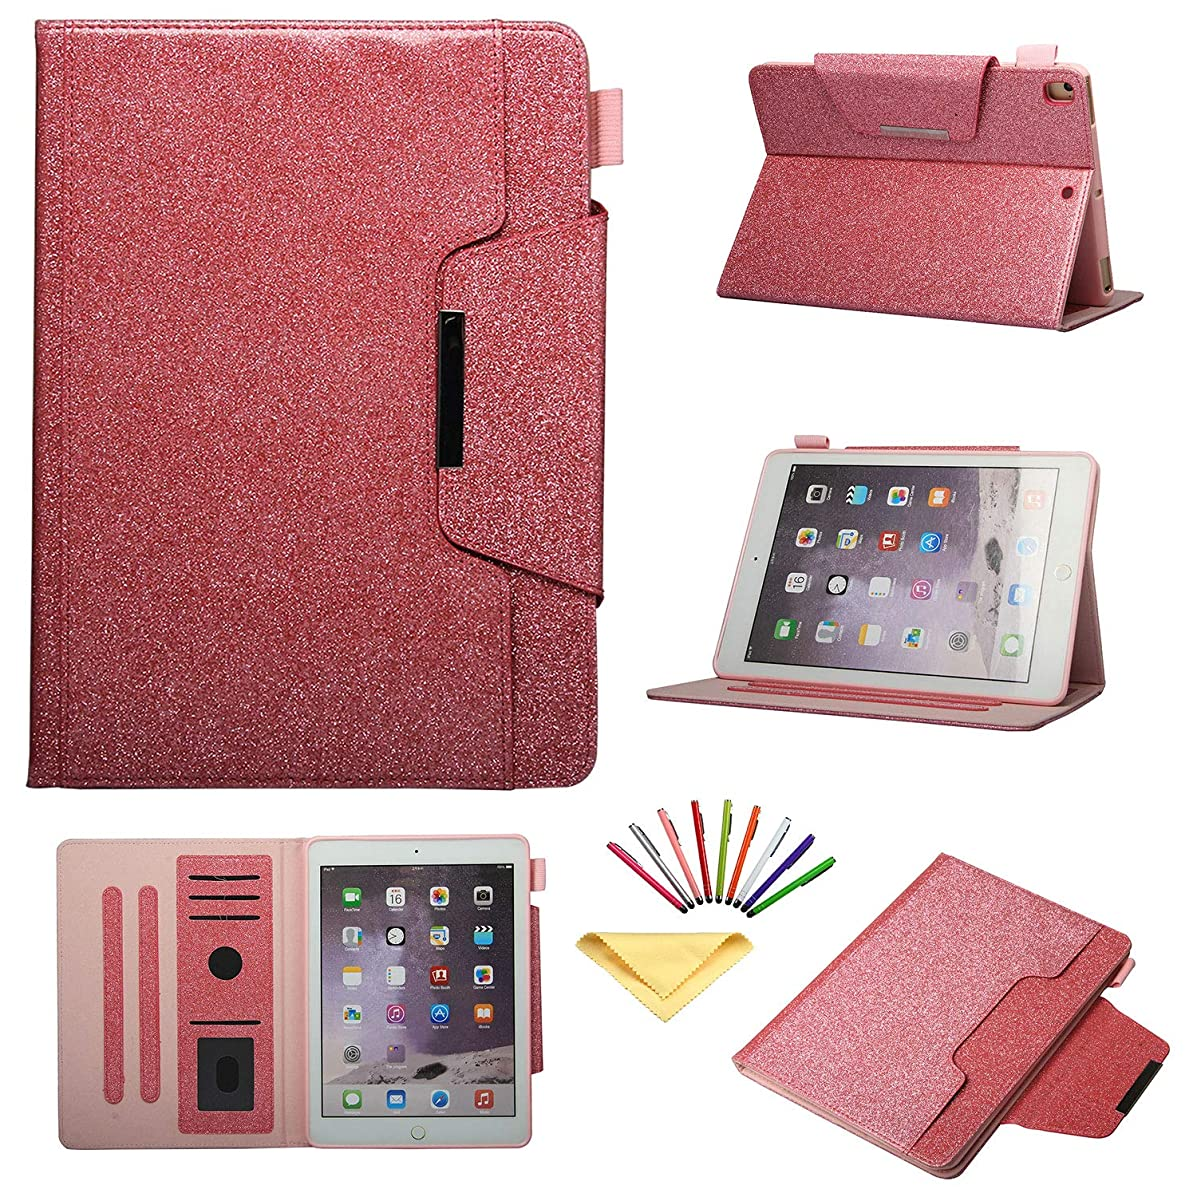 iPad 9.7 inch 2018 2017 (iPad 6th/5th Generation),for Apple iPad Air/Air 2, iPad Pro 9.7 2016 Case, Uliking Bling Smart Folio Stand PU Leather TPU Cover with Card Pencil Holder [Auto Wake/Sleep], Pink